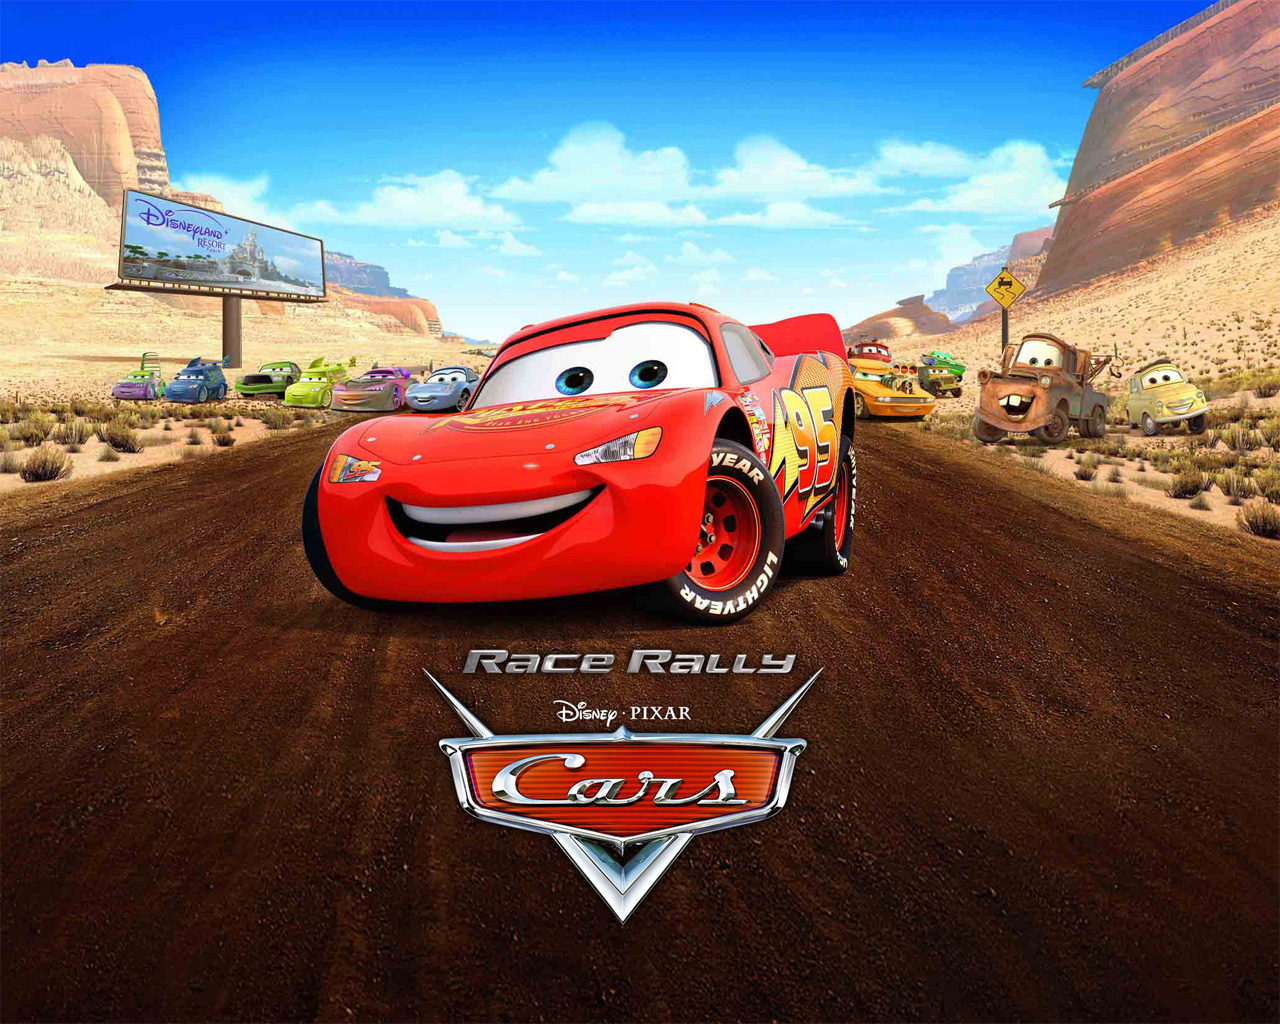 17 Best Ideas About Disney Cars Wallpaper On Pinterest | Disney